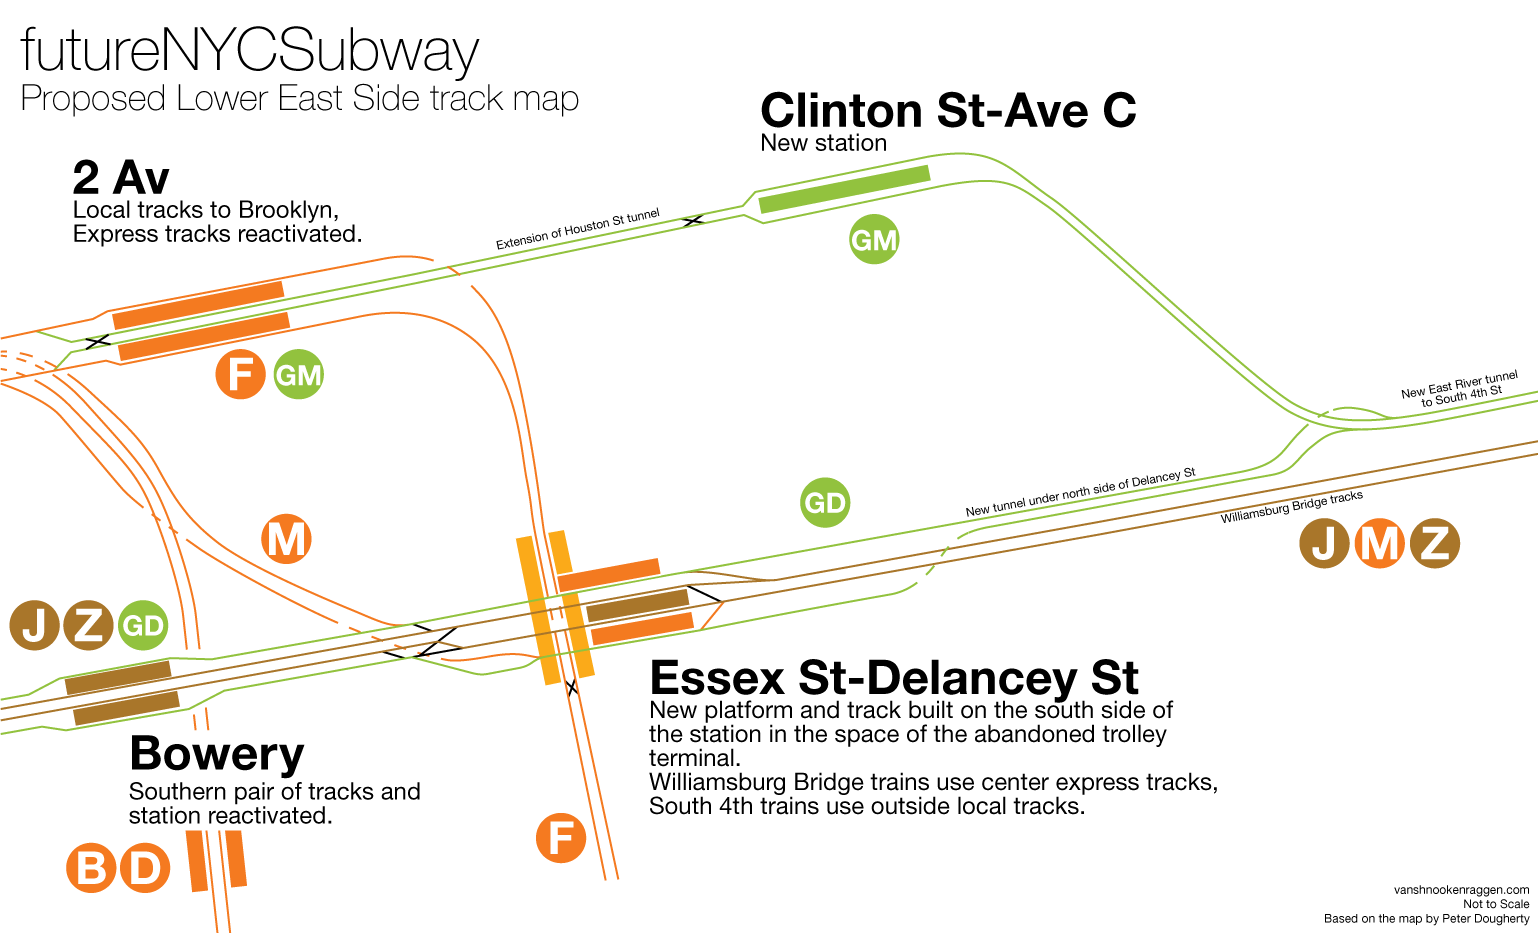 New York Subway Map G Line.Proposed Track Map Showing How New Crosstown Loop Lines Would